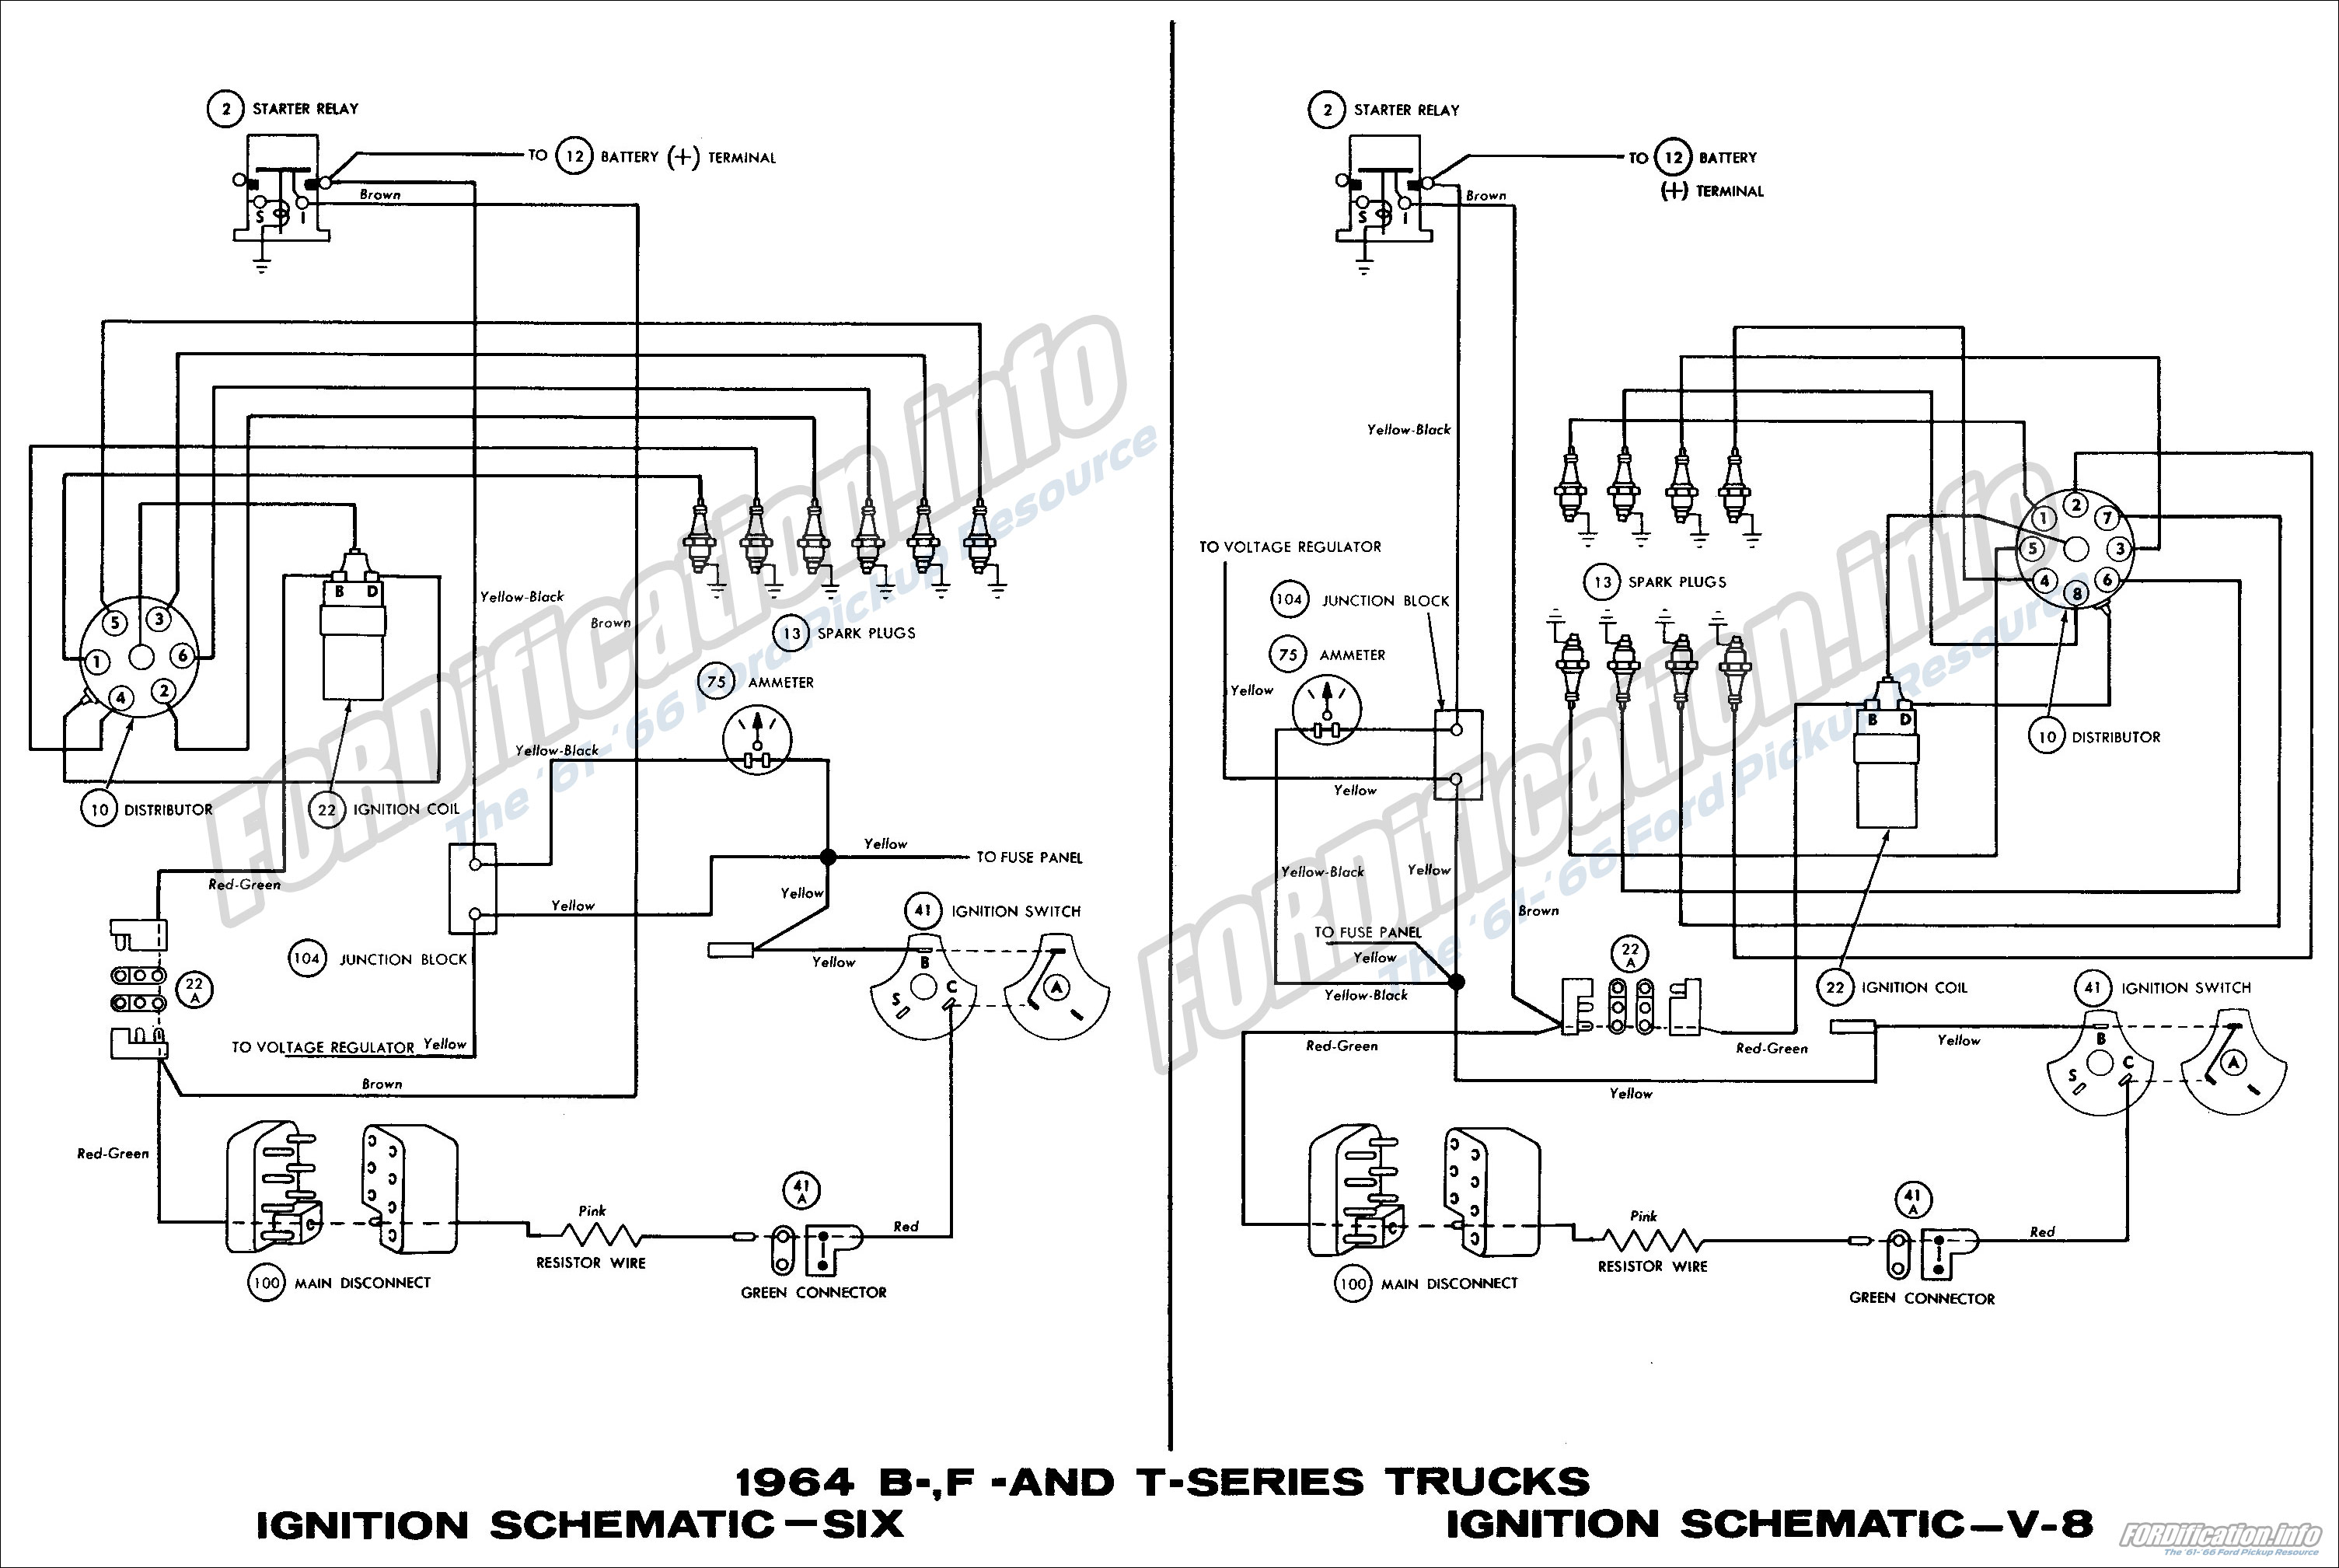 64 Ford F100 Wiring - Auto Electrical Wiring Diagram • Wiring Diagram For Ford F on 1978 ford truck wiring diagram, 56 ford truck wiring diagram, 1973 ford wiring diagram, 1976 ford ignition wiring diagram, ford ignition switch wiring diagram, 1979 ford f-150 wiring diagram, 65 ford pickup 4x4, 65 ford truck parts, 65 chevelle wiring diagram, ford tractor starter solenoid wiring diagram, 1953 ford wiring diagram, 1966 ford wiring diagram, 65 ford f-250, 1954 ford wiring diagram, 1968 ford f-250 wiring diagram, 65 mustang engine diagram, 65 ford steering column wiring, ford f150 wiring diagram, 1957 ford wiring diagram, 1965 ford wiring diagram,